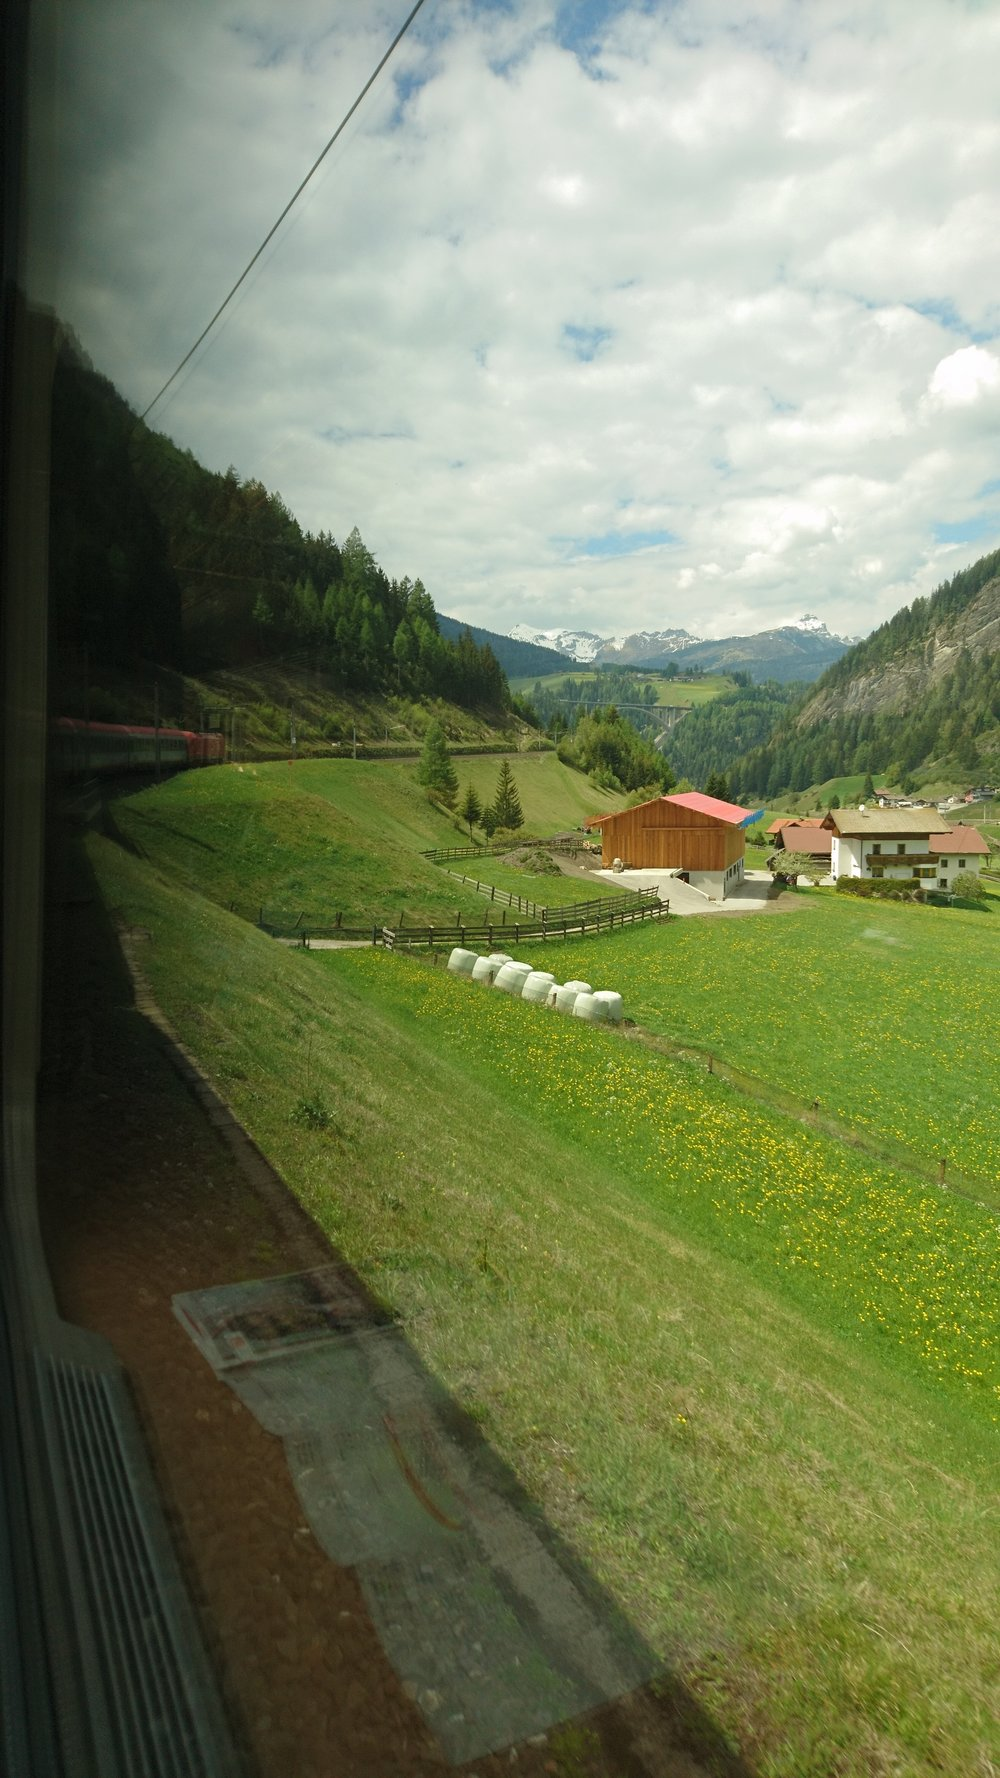 View from the train on The Brenner Pass